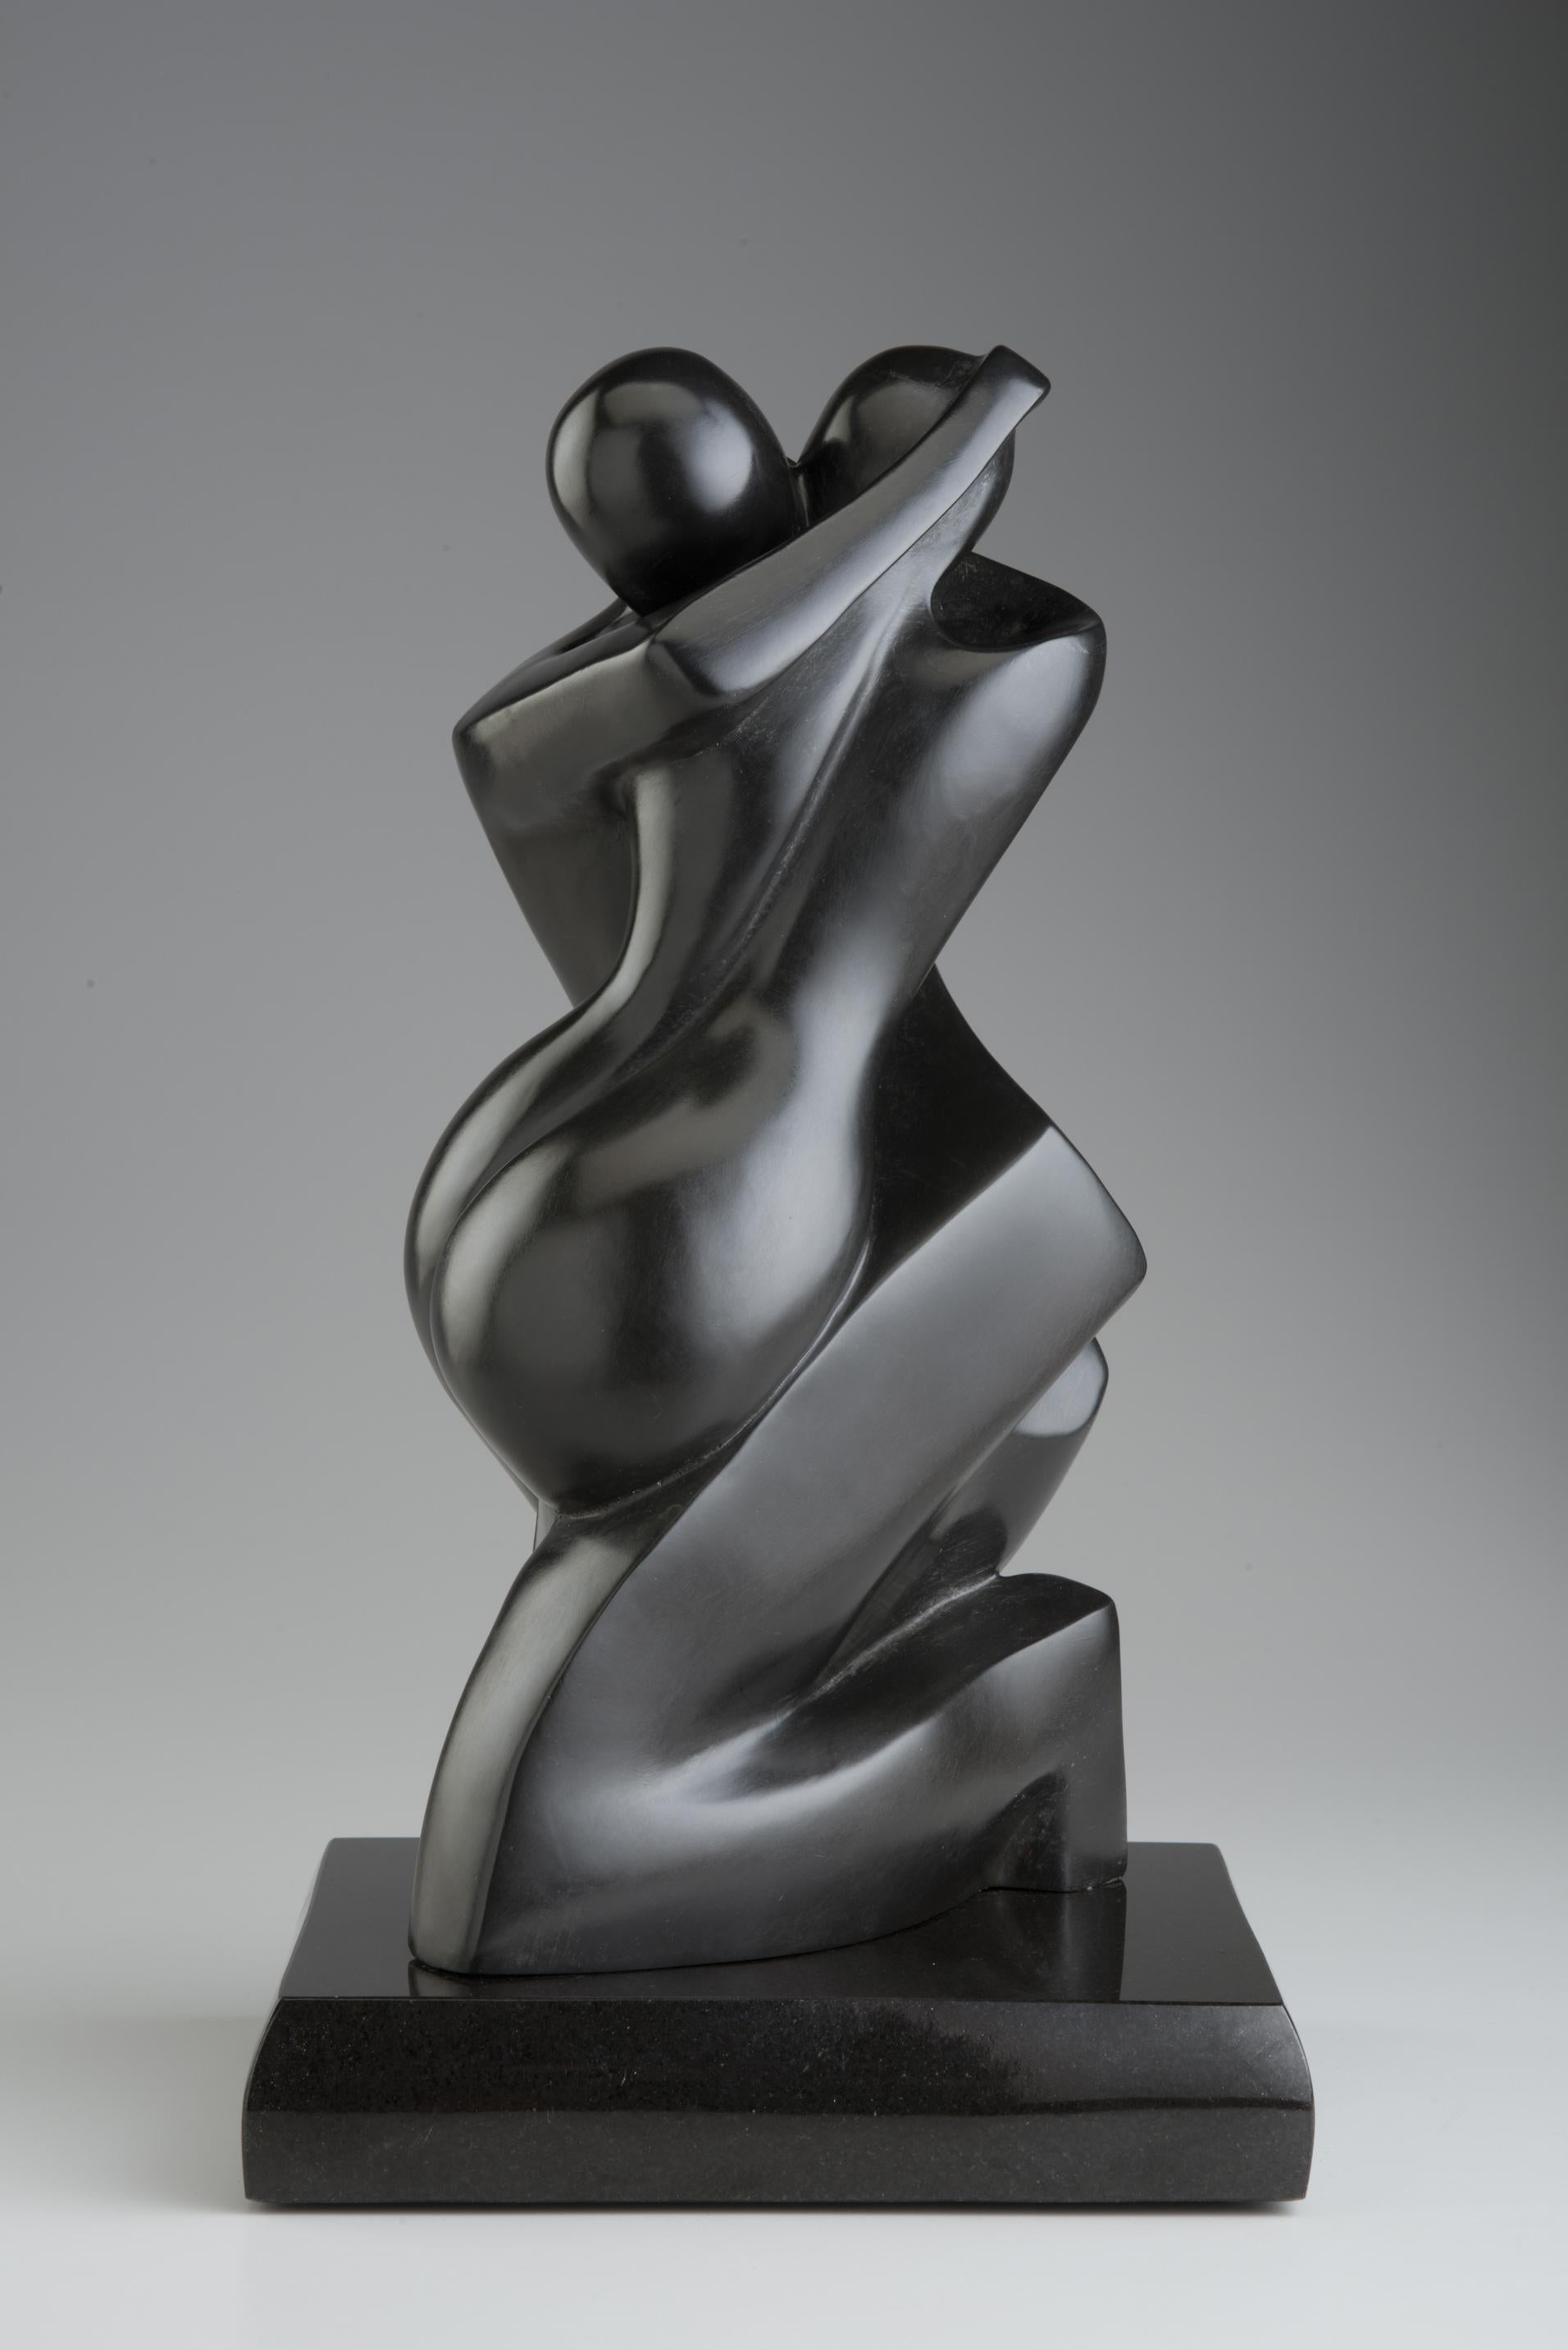 Soulmates II by Shray, Bronze Abstract Sculpture, Contemporary Sculpture